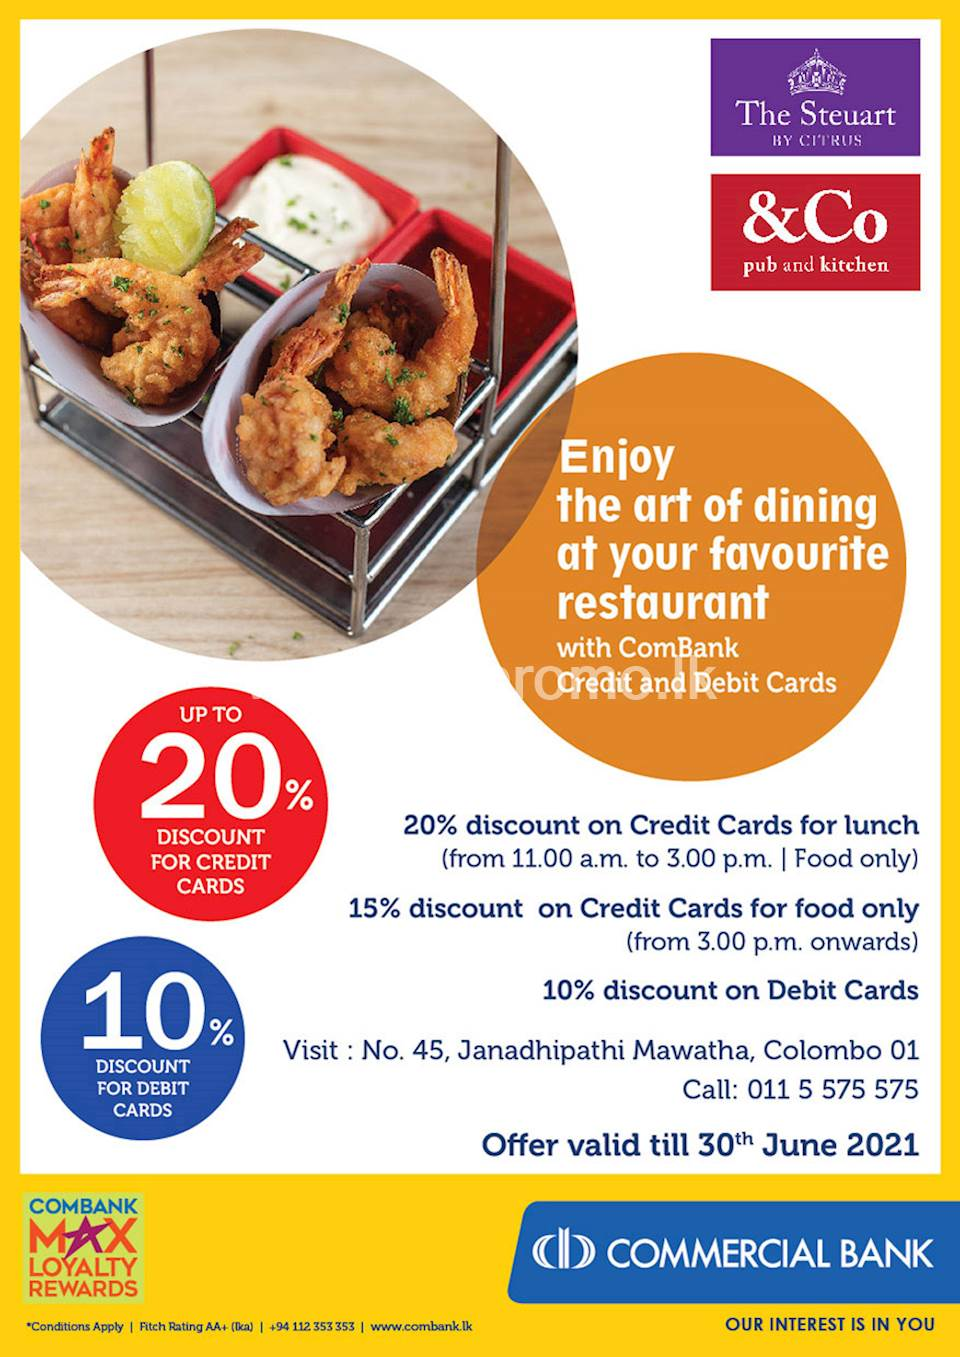 Enjoy up to 20% Discount for ComBank Credit and Debit Cards at The Steuart by Citrus